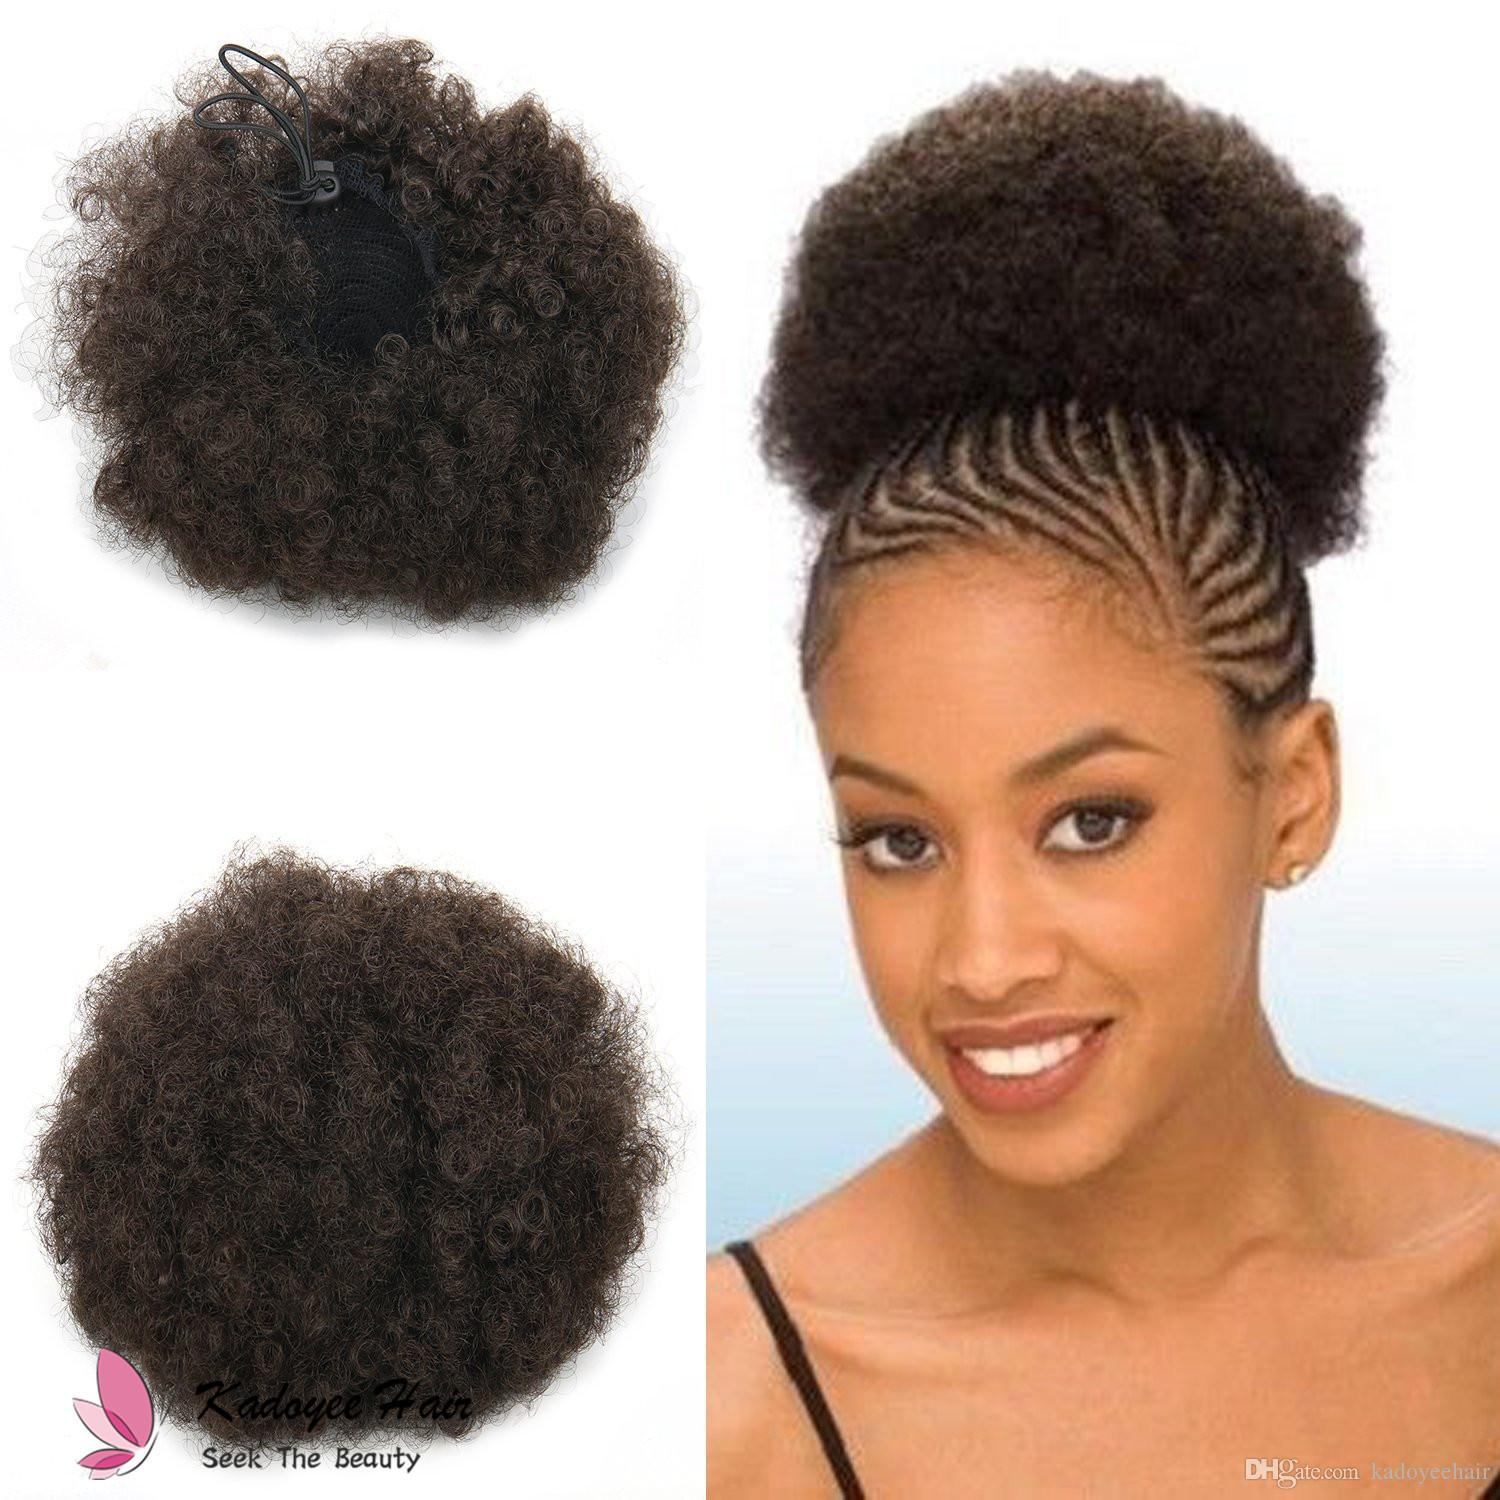 Synthetic Afro Curly Hair Chignon Synthetic Hair Buns Hairpiece Fake